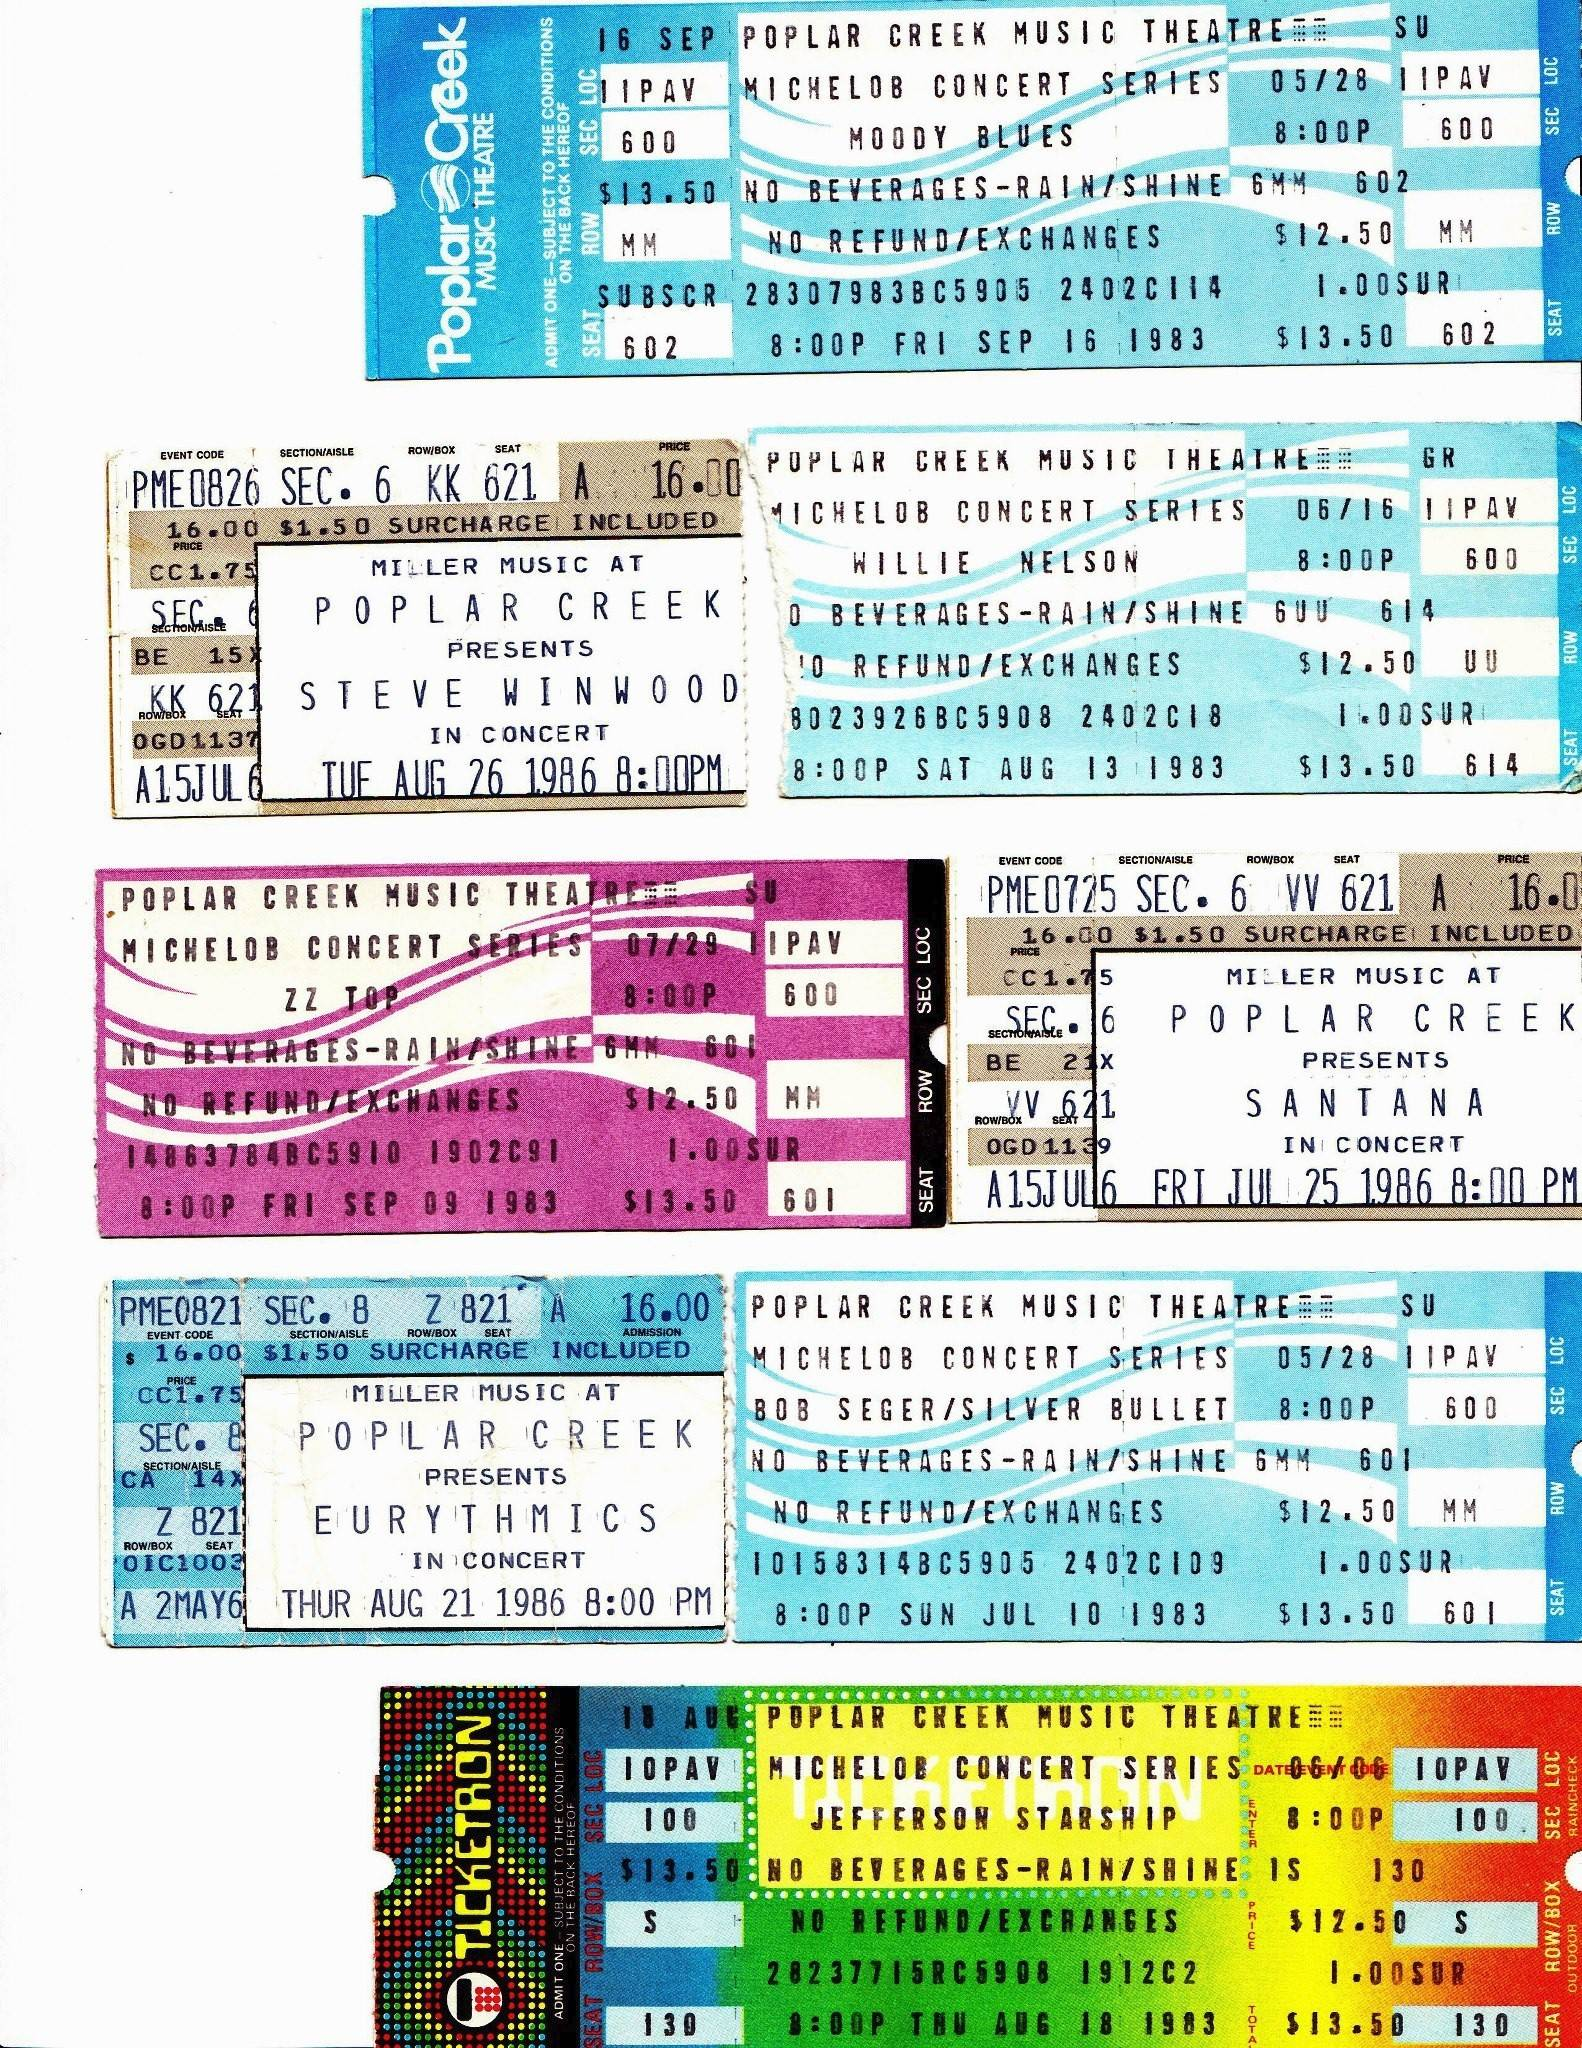 The colorful ticket stubs from the former Poplar Creek Music Theatre in Hoffman Estates.